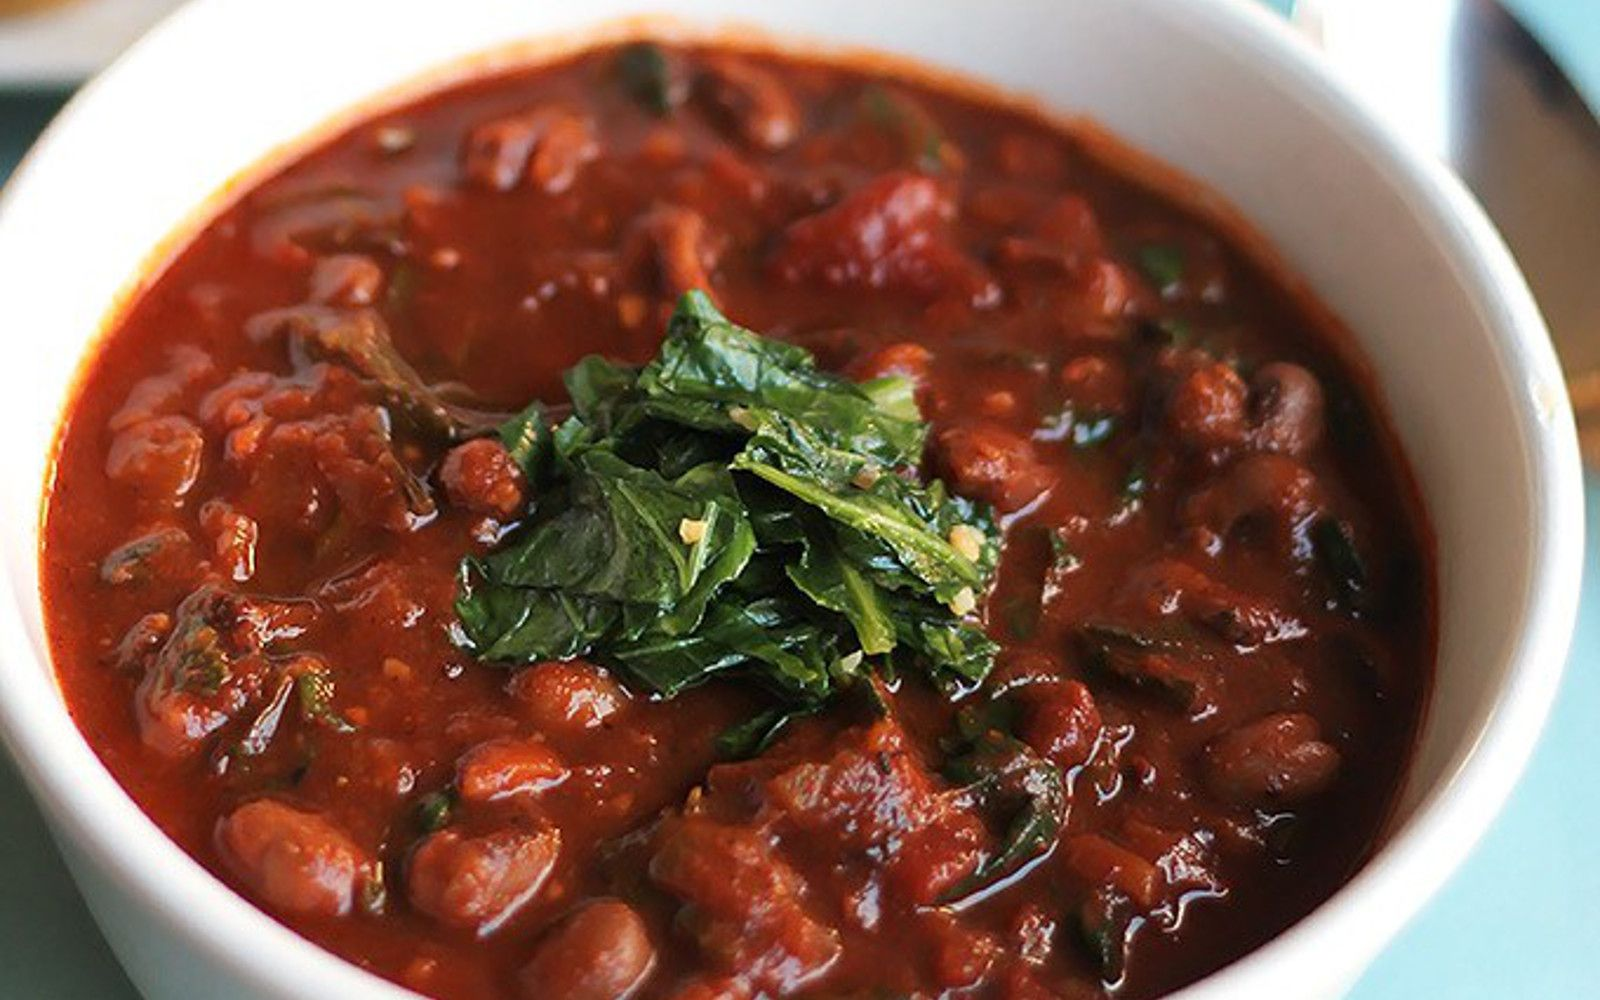 <p>This black-eyed pea chili is slowly simmered over six hours so that the flavors can fully blend together, and then served over sautéed collard greens. It's delicious, filling, and healthy.</p>